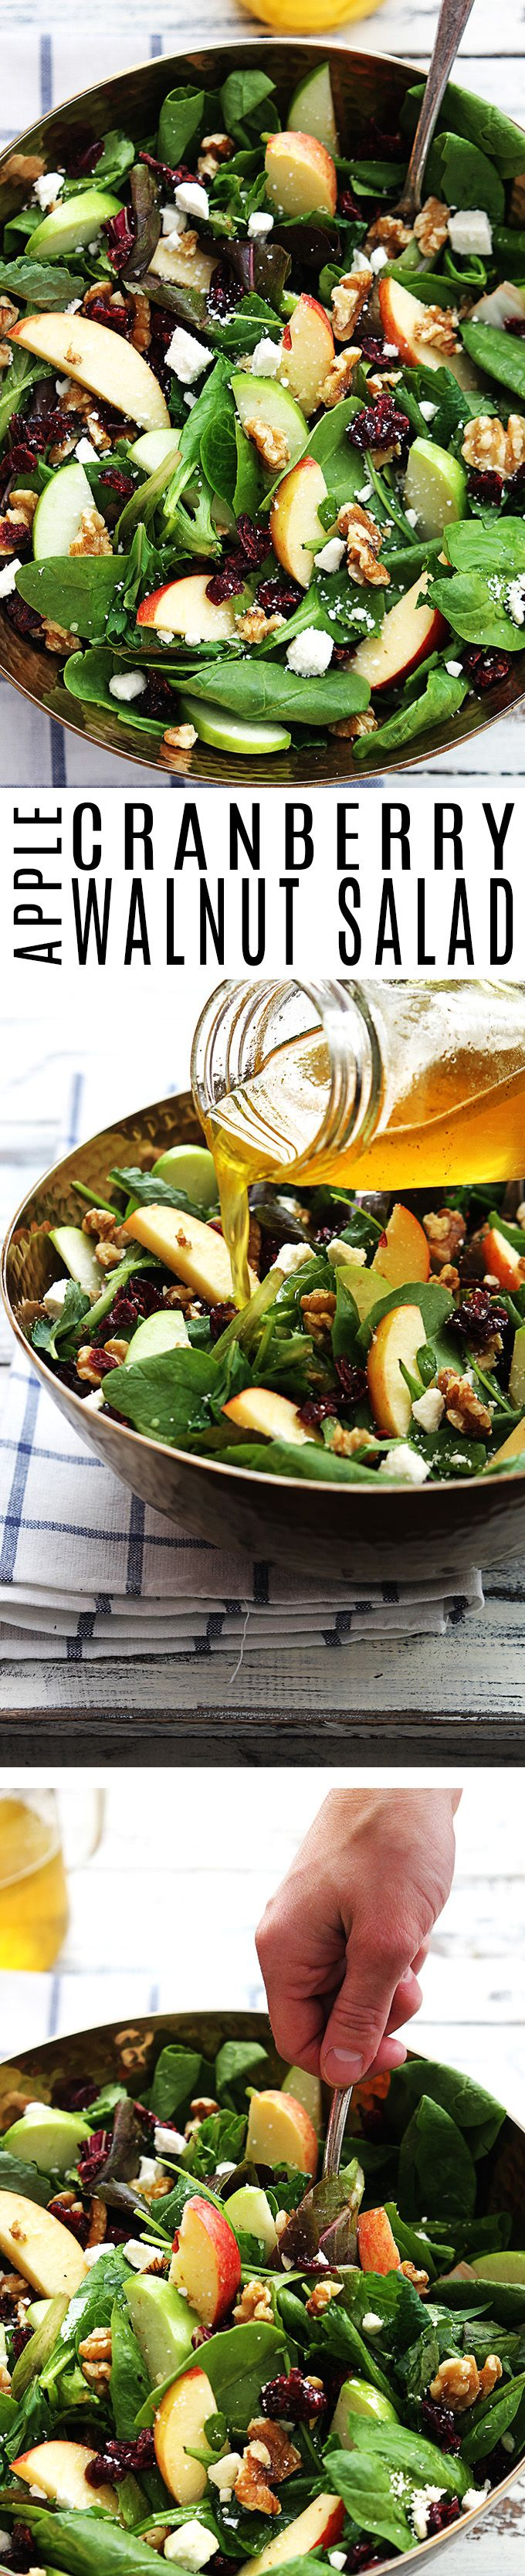 Apple Cranberry Walnut Salad ~ crisp apples, dried cranberries, feta cheese, and hearty walnuts come together in a fresh autumn salad! http://eatdojo.com/healthy-salad-recipes-lunch-work-easy-diet/